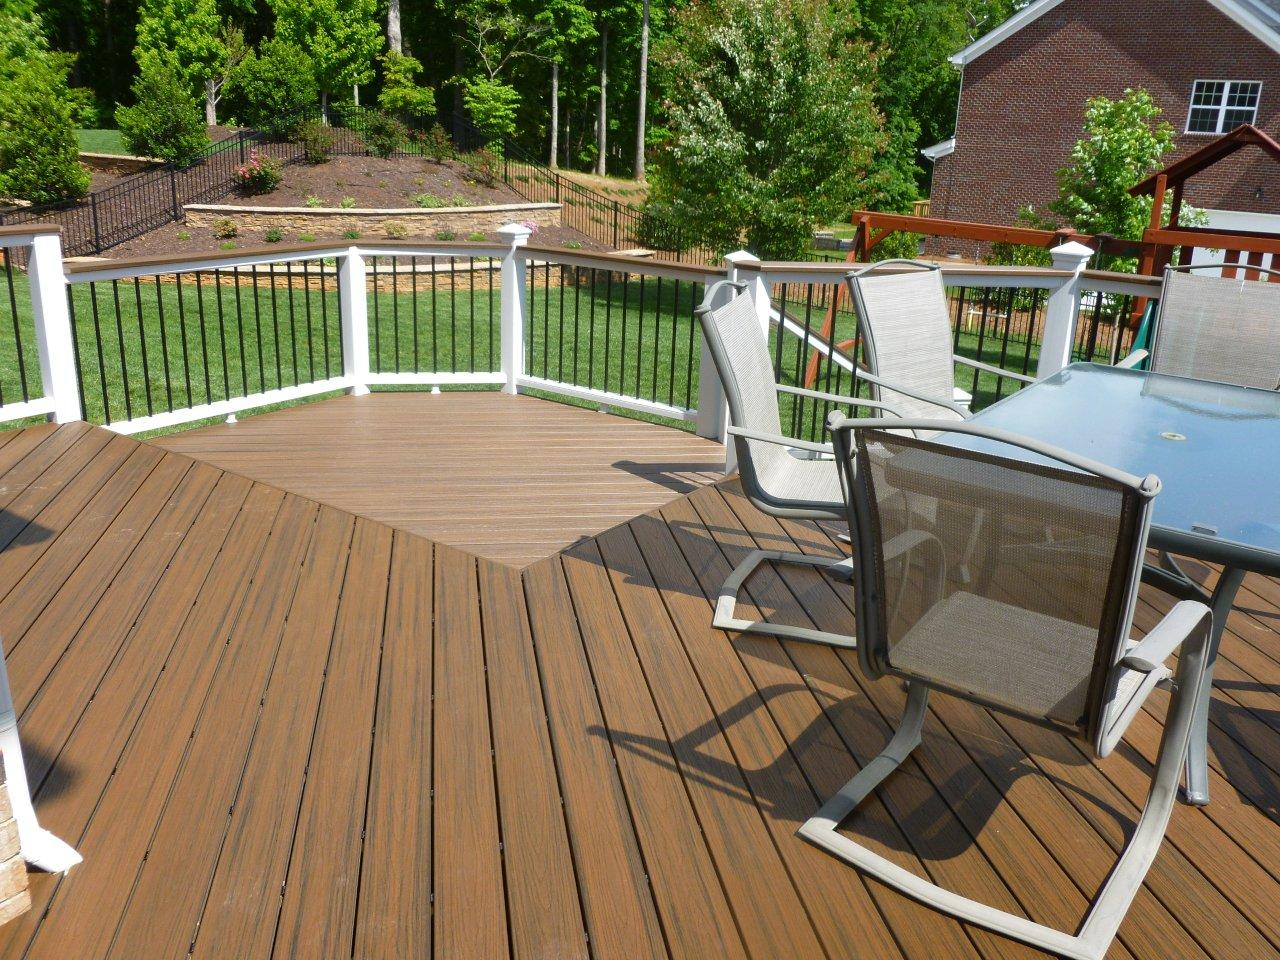 Consider-updating-your-deck-railing-and-balusters